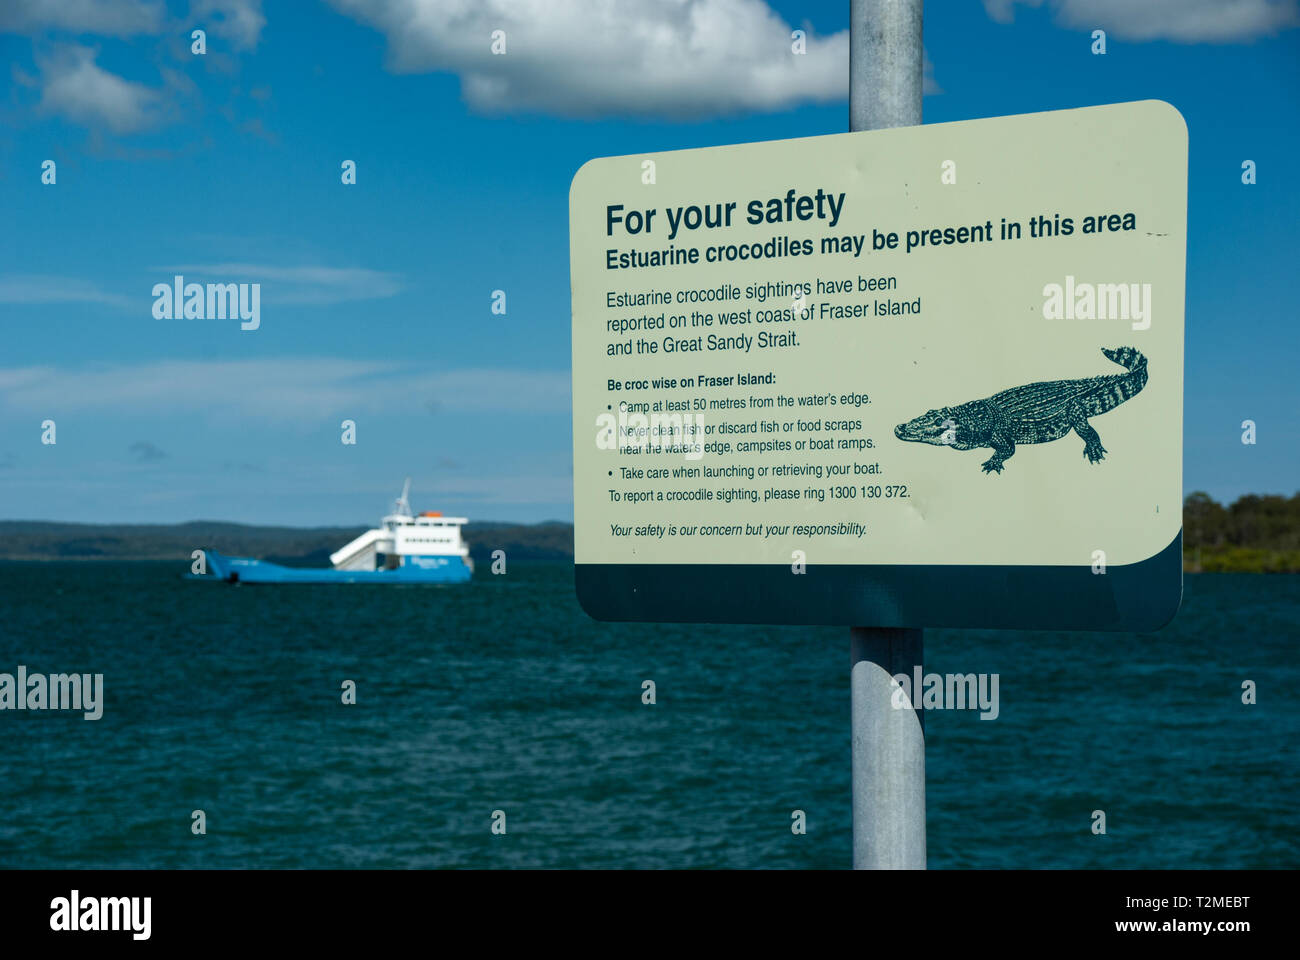 Crocodiles are a recent danger in the area of Fraser Island, therefore the government have placed signs to warn people of the risks. - Stock Image